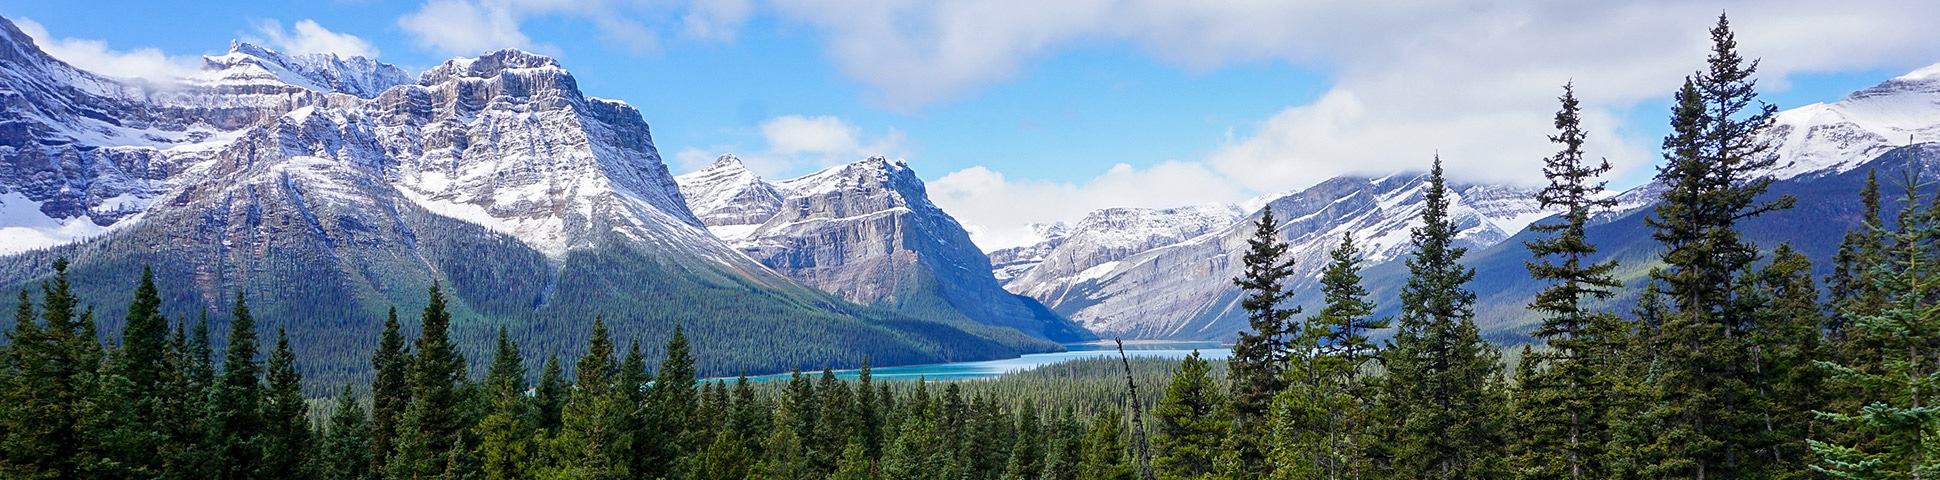 Panorama on Lake Louise to Bow Summit and Back road biking route in Banff National Park